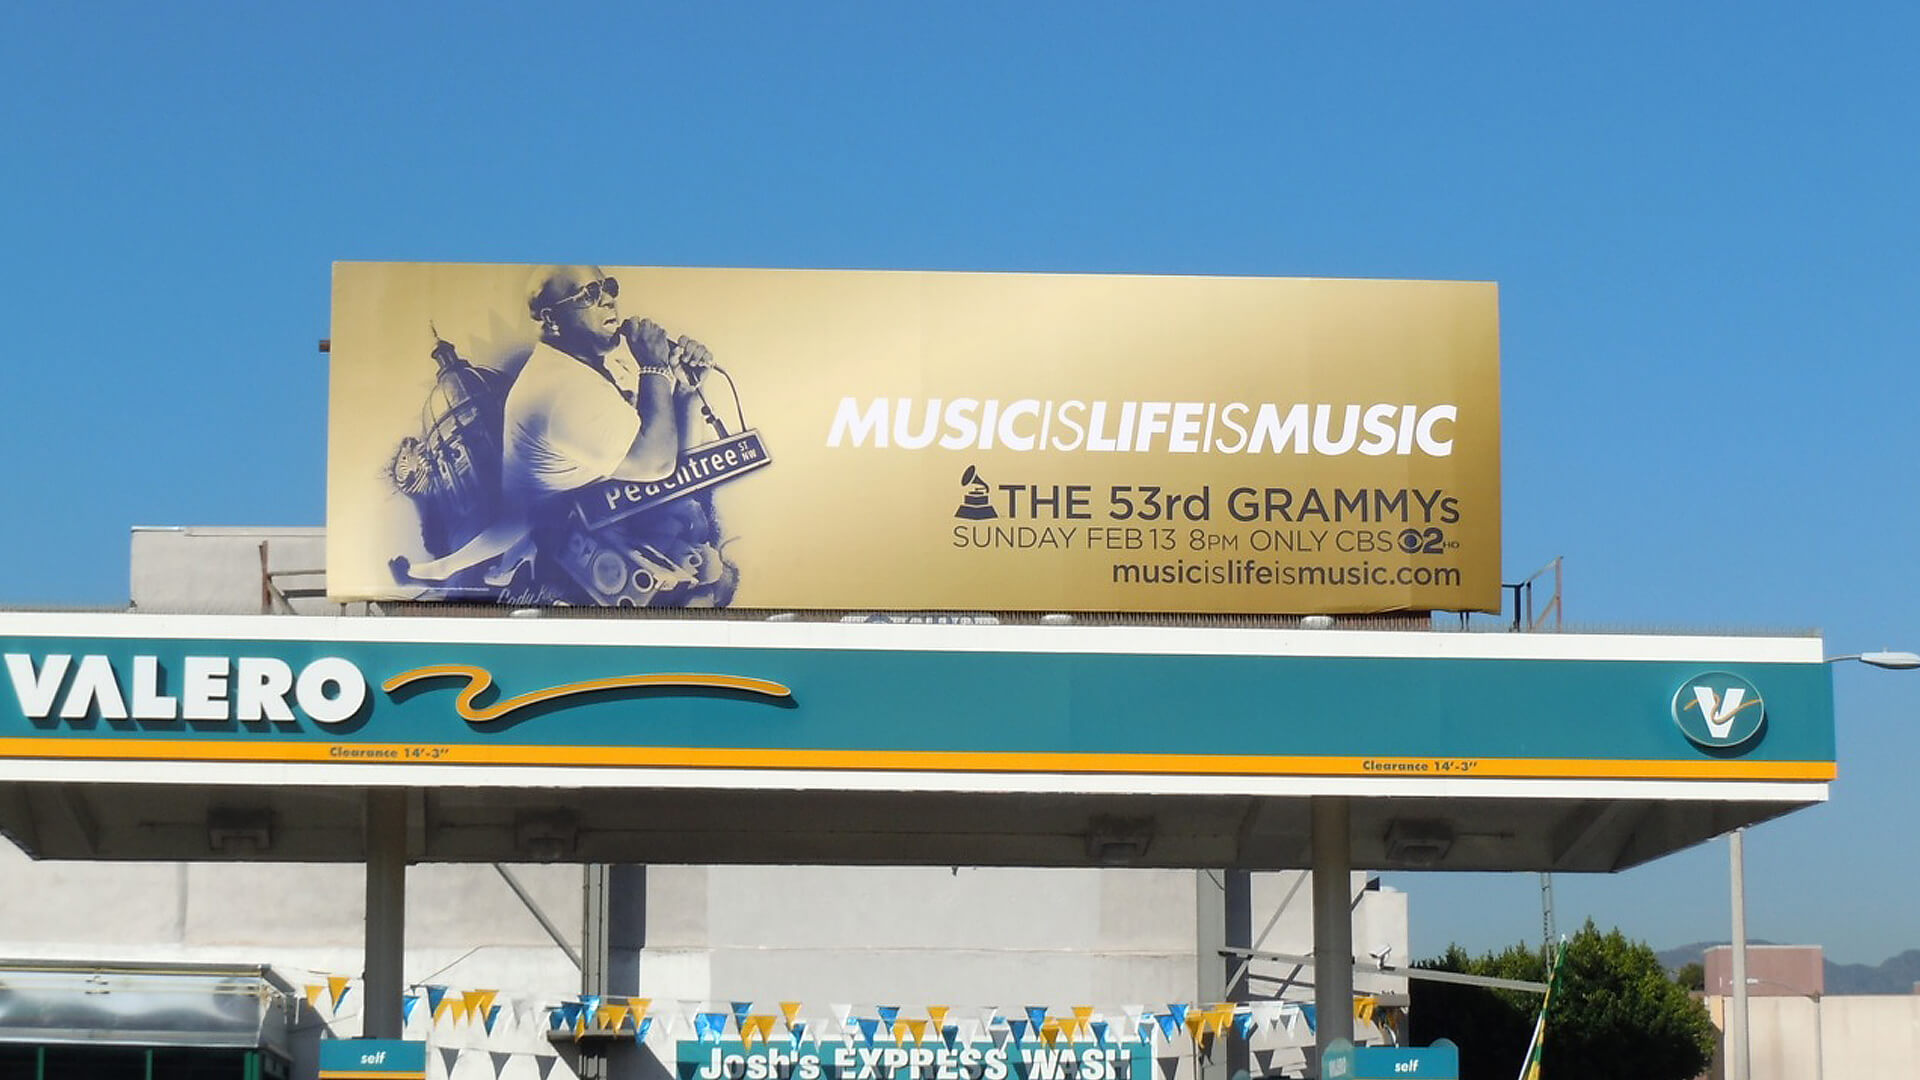 ooh_billboard_grammys